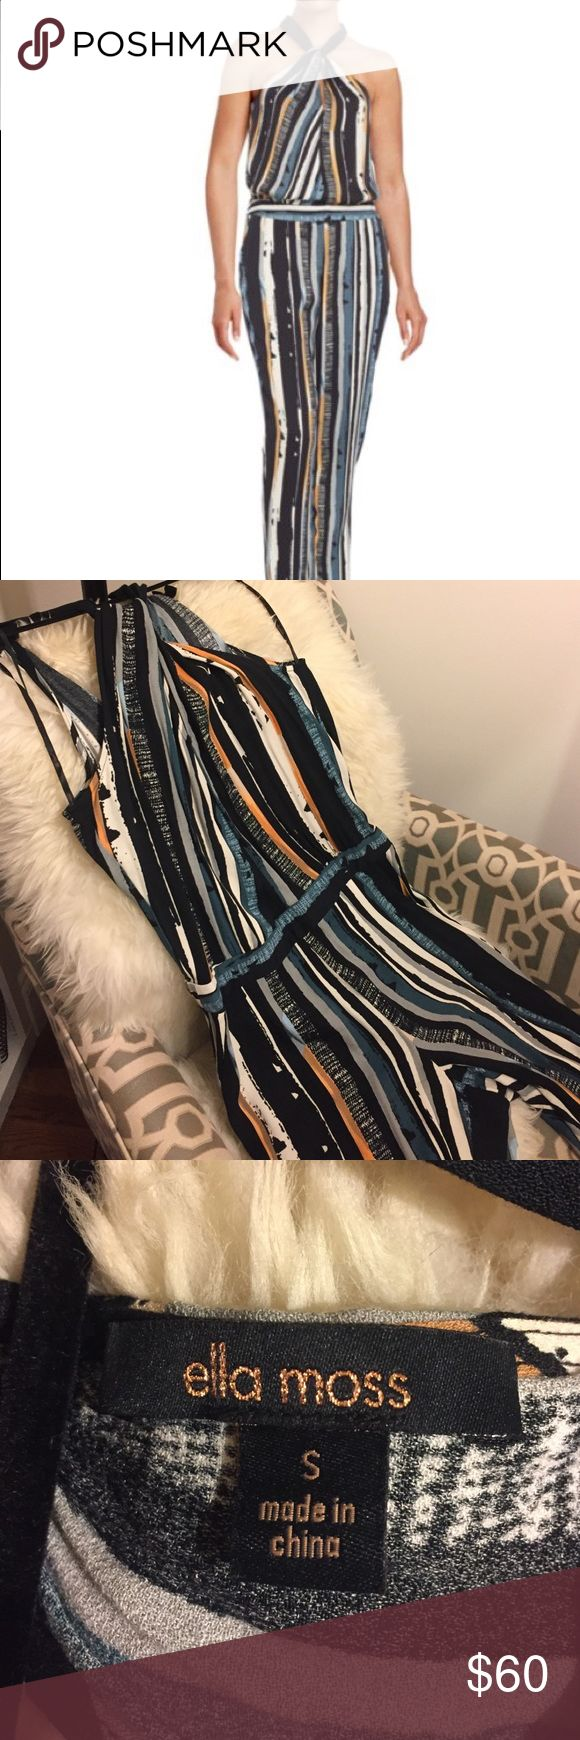 """Ella Miss Rainforest striped jumpsuit Beautiful, vertical print jumpsuit with a twisted halter neck and a drop waist- super flattering slouchy viscose fabric. A beautiful blend of blues, peach, white and grey. 30"""" inseam. Perfect for a night out! 💥 Ella Moss Pants Jumpsuits & Rompers"""